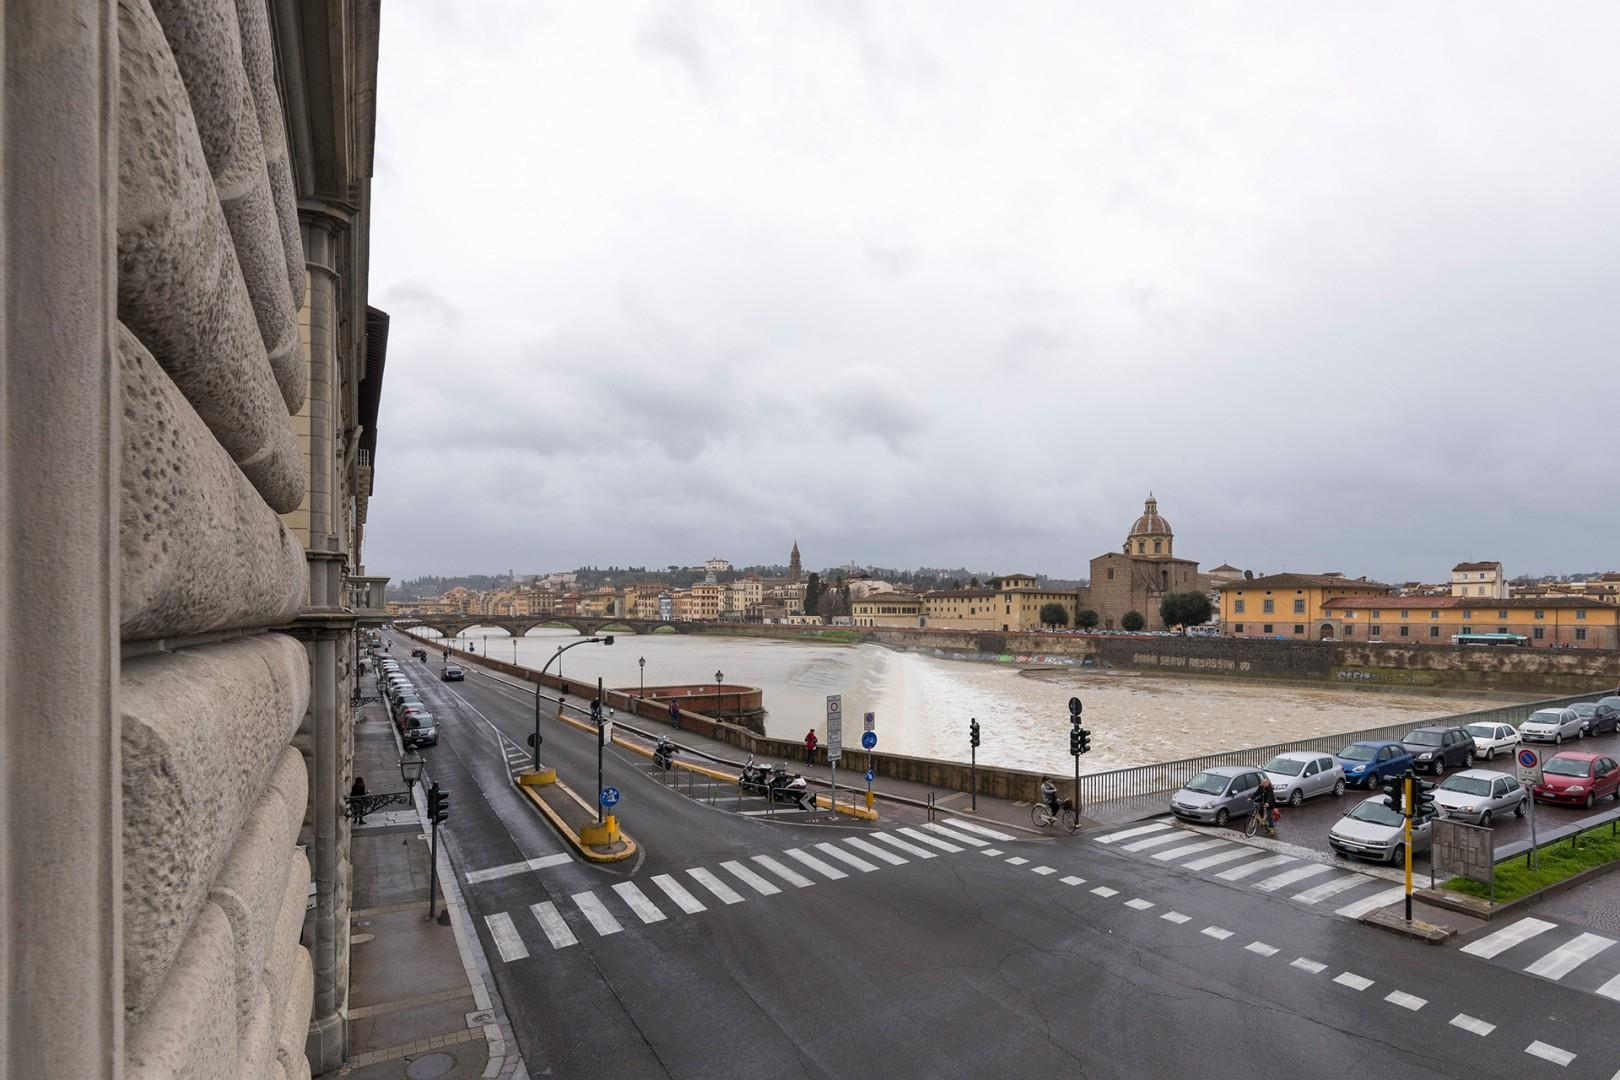 Enjoy views of the Arno river and the hills beyond that rise above the Oltrarno area of Florence.